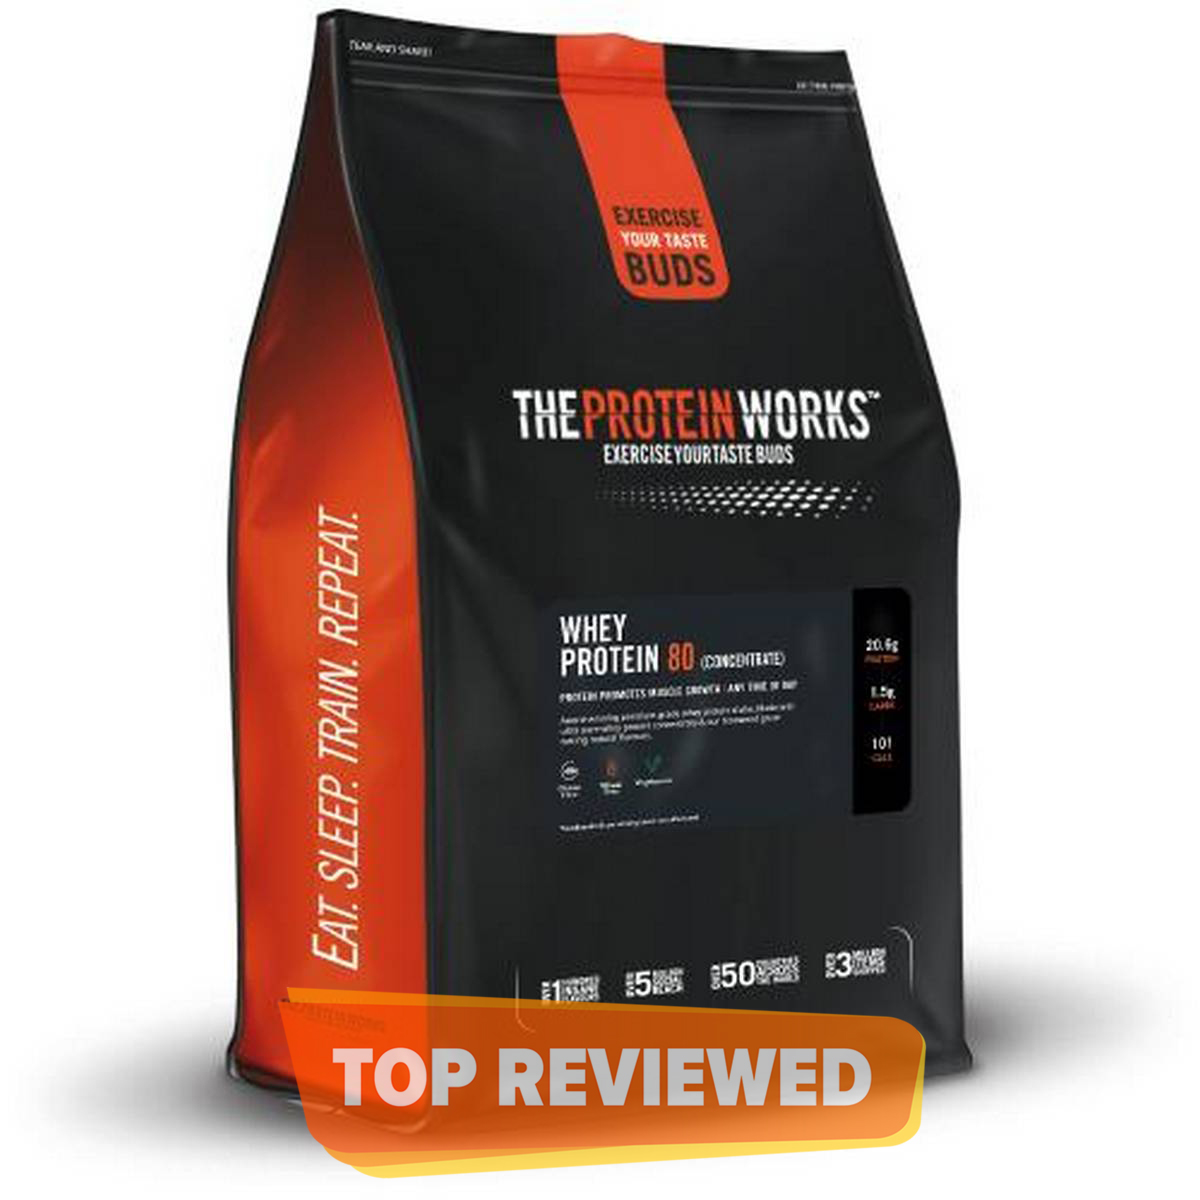 The Protein Works Whey Protein 80 - 1 kg (2.2 lbs) - Strawberries 'n' Cream